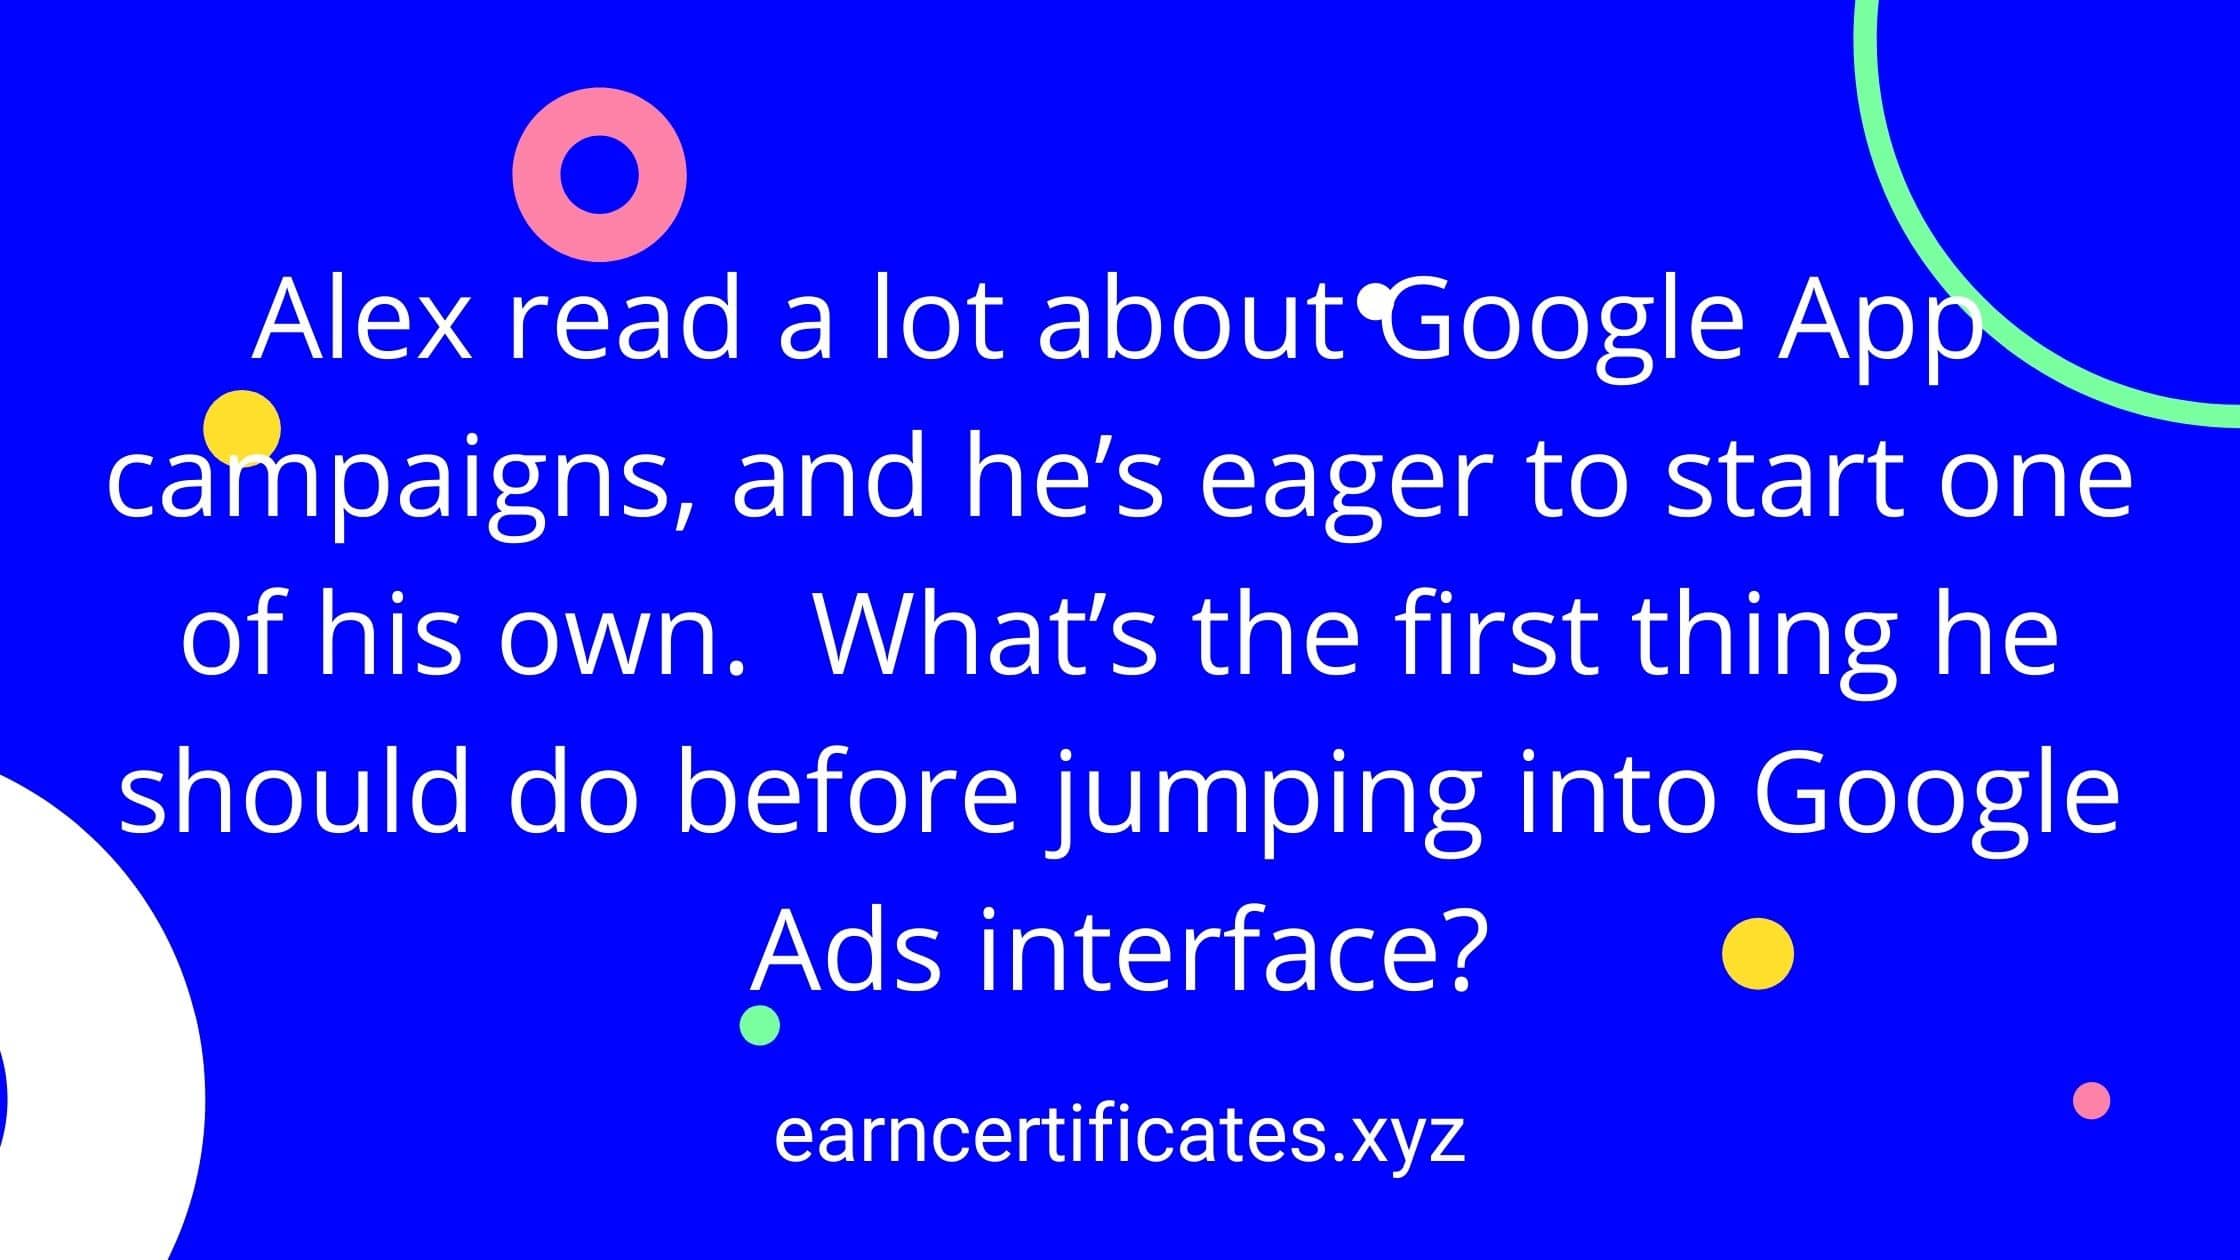 Alex read a lot about Google App campaigns, and he's eager to start one of his own. What's the first thing he should do before jumping into Google Ads interface?